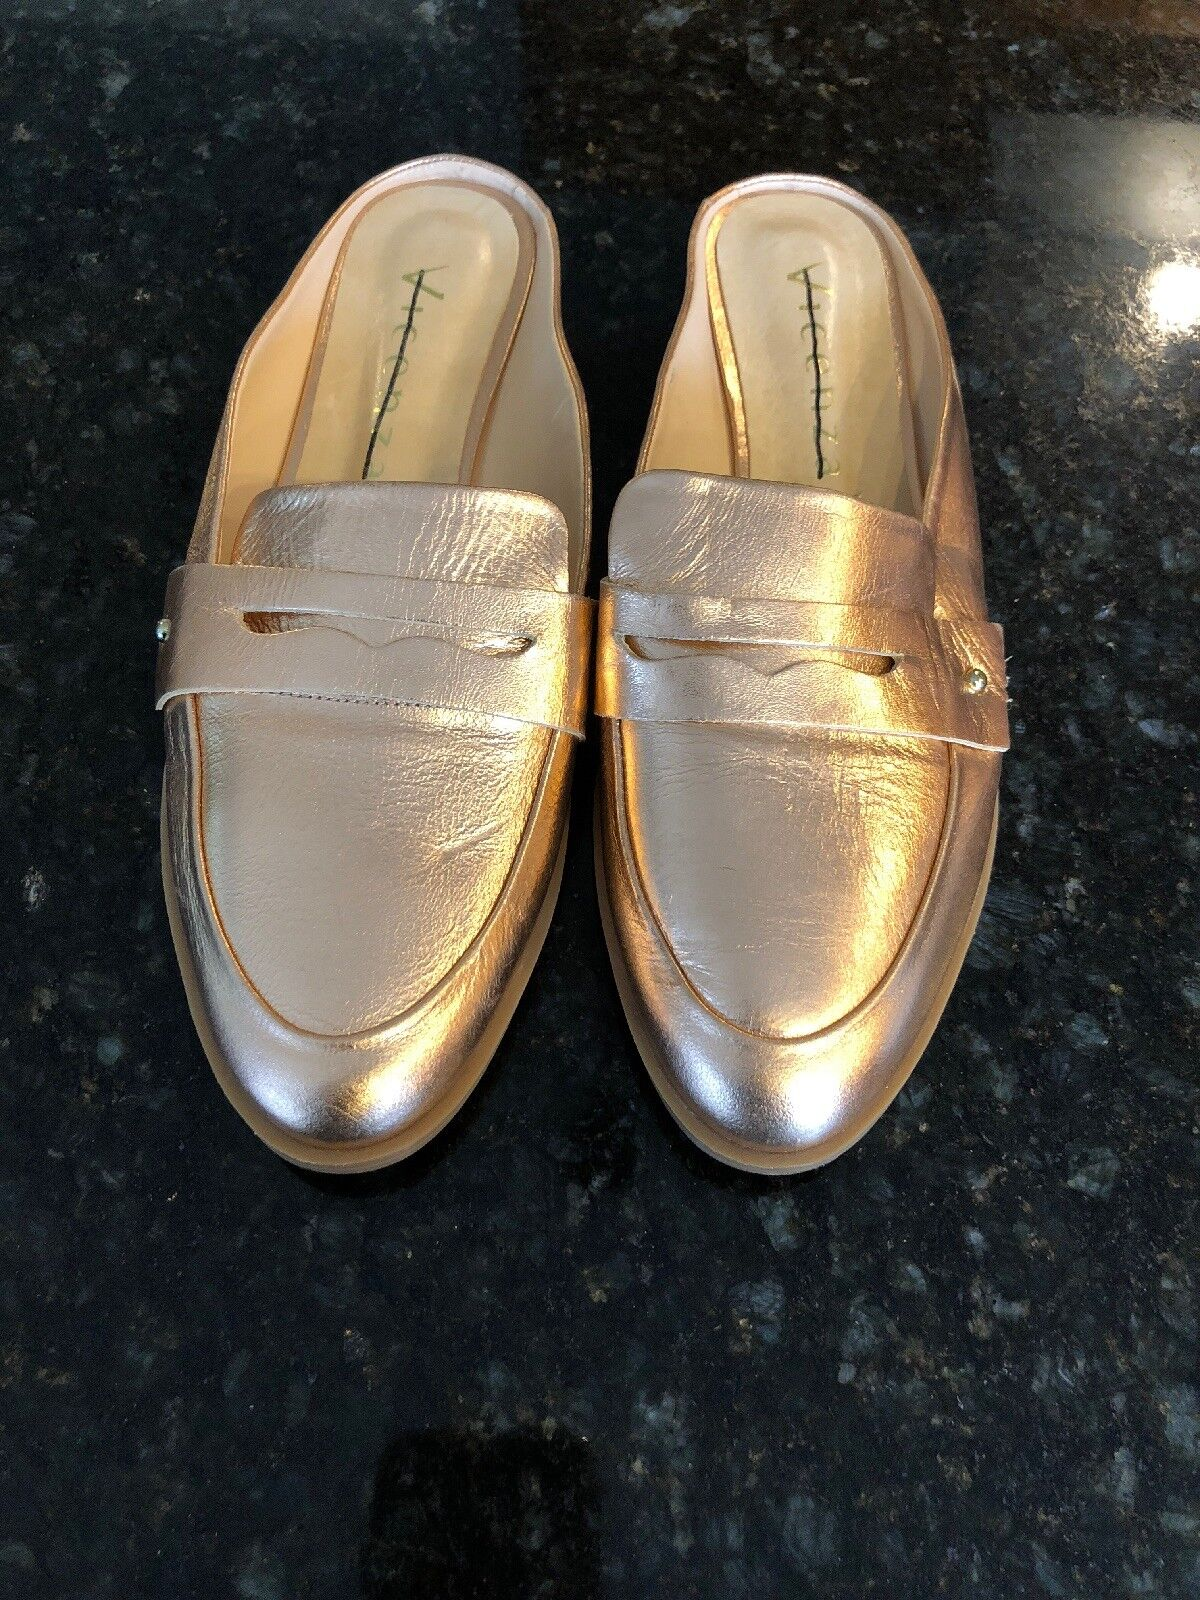 Anthropologie Vicenza  oro Leather Mules, nuovo,  Suze 38 7